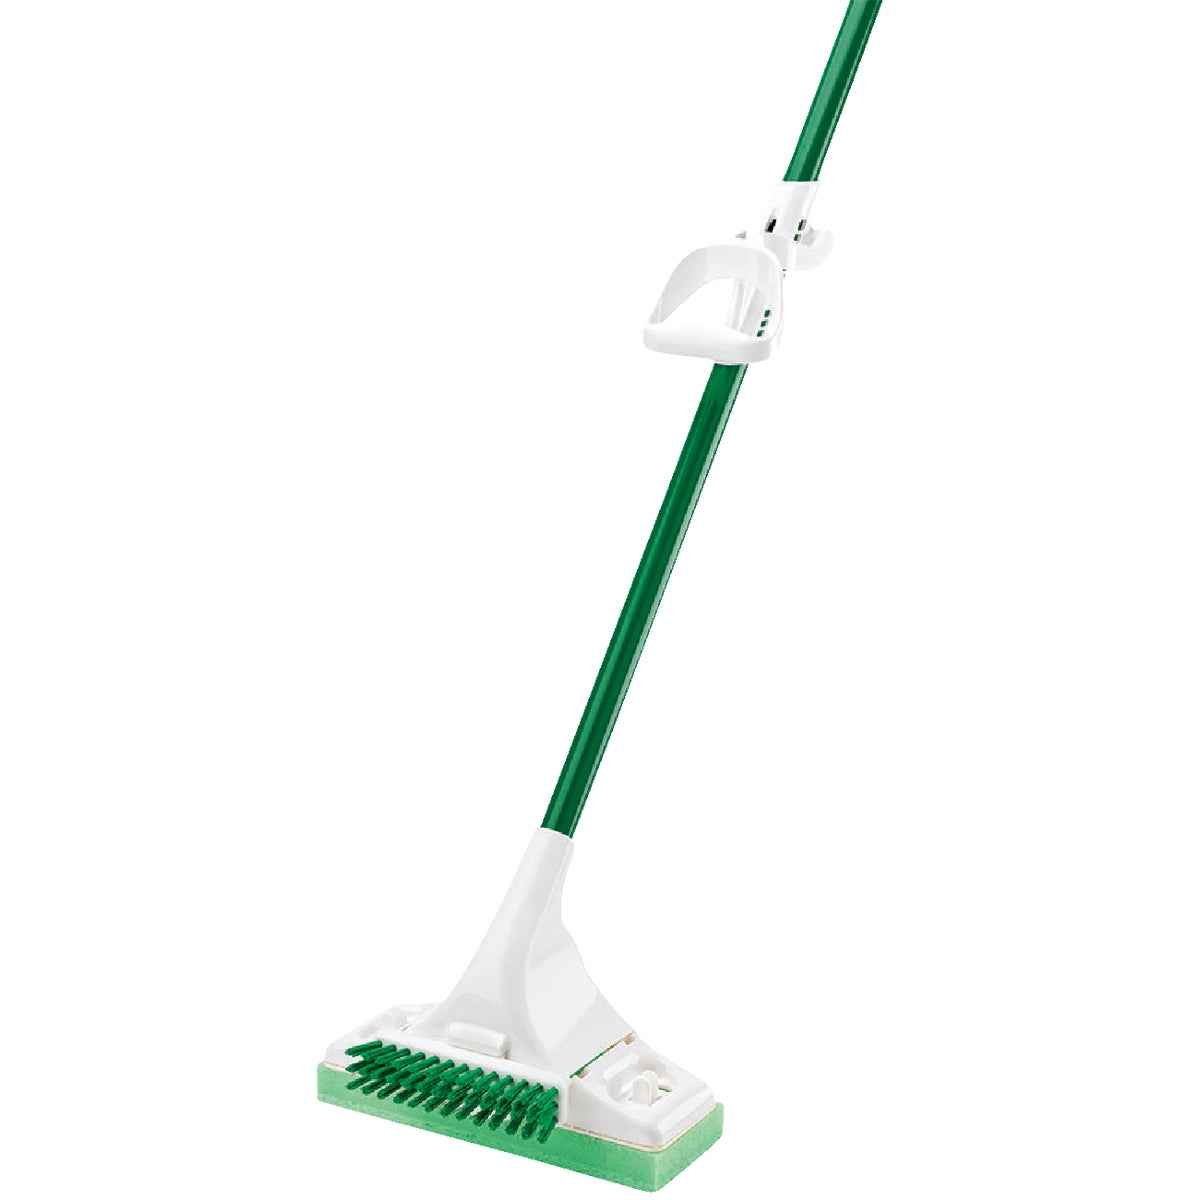 GATOR MOP - 2020 by The Libman Company